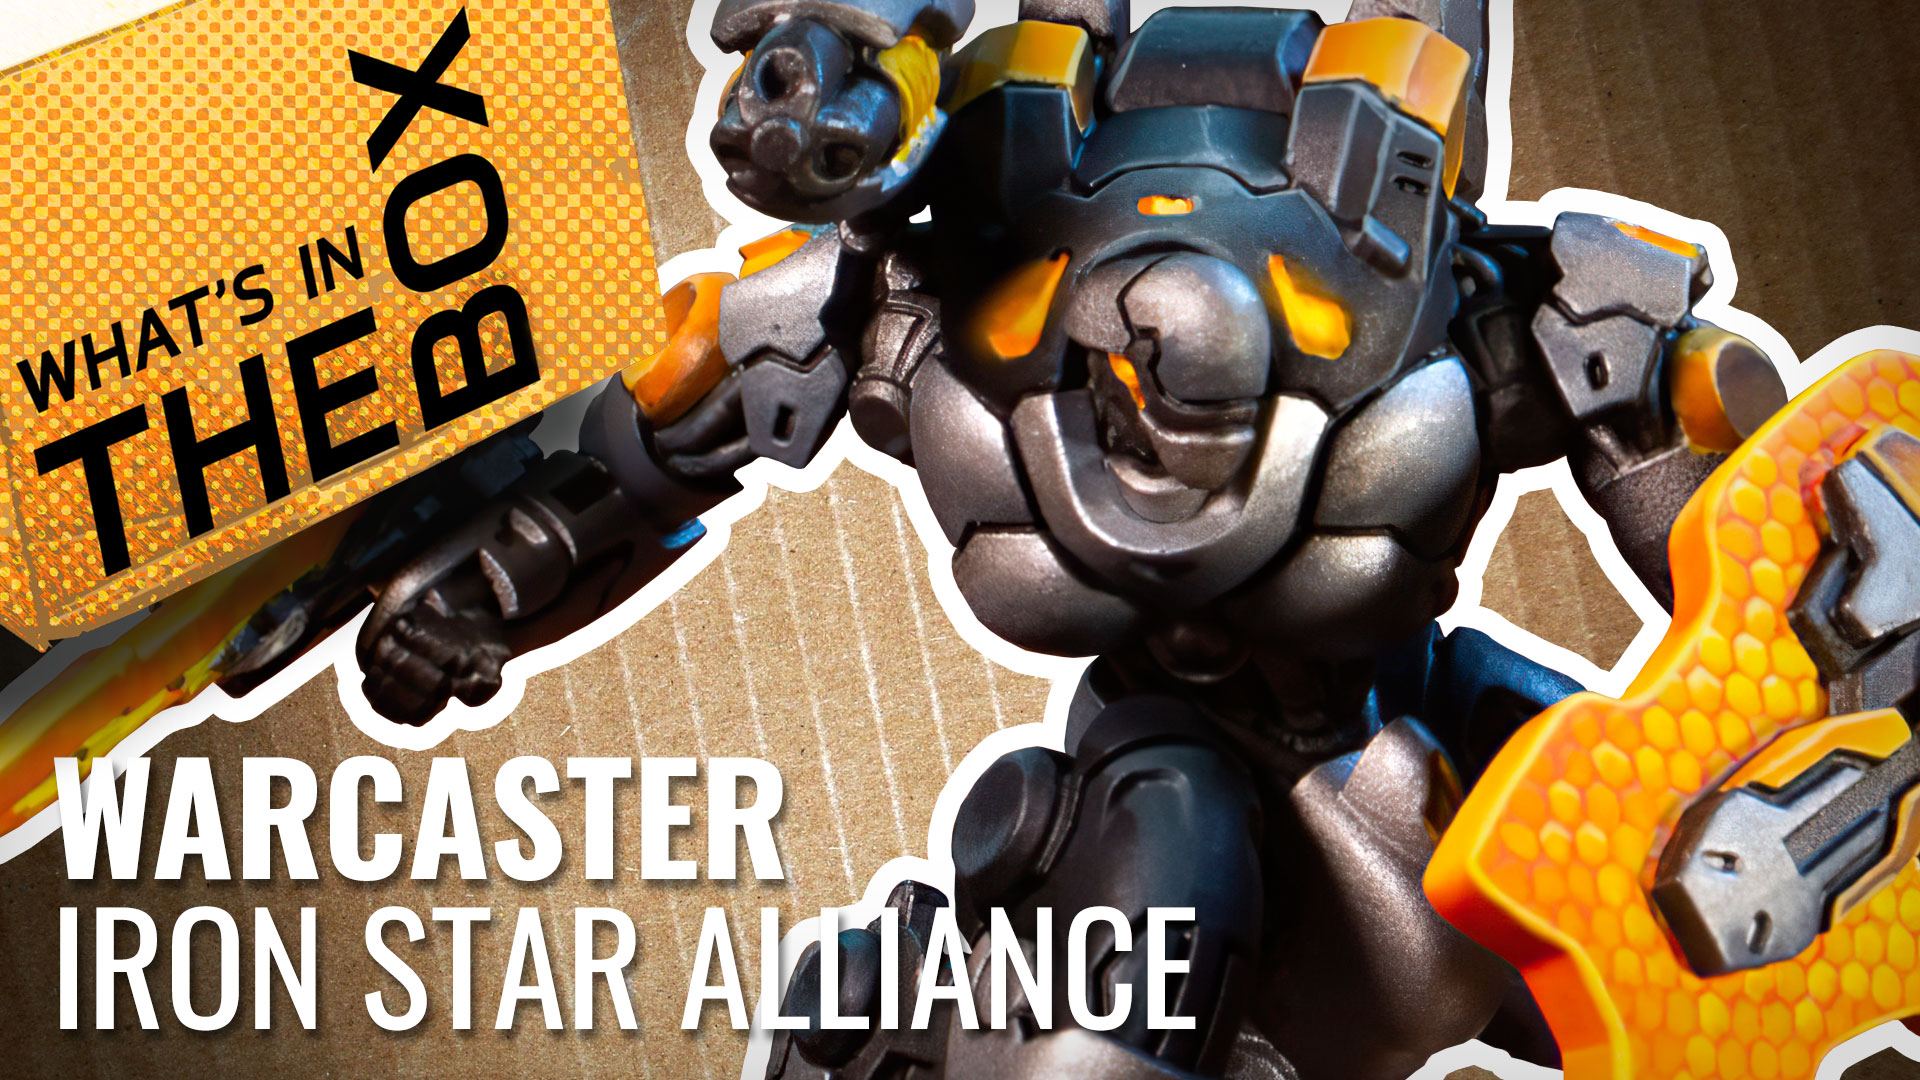 Warcaster-Neo-Mechanika---Iron-Star-Alliance-coverimage